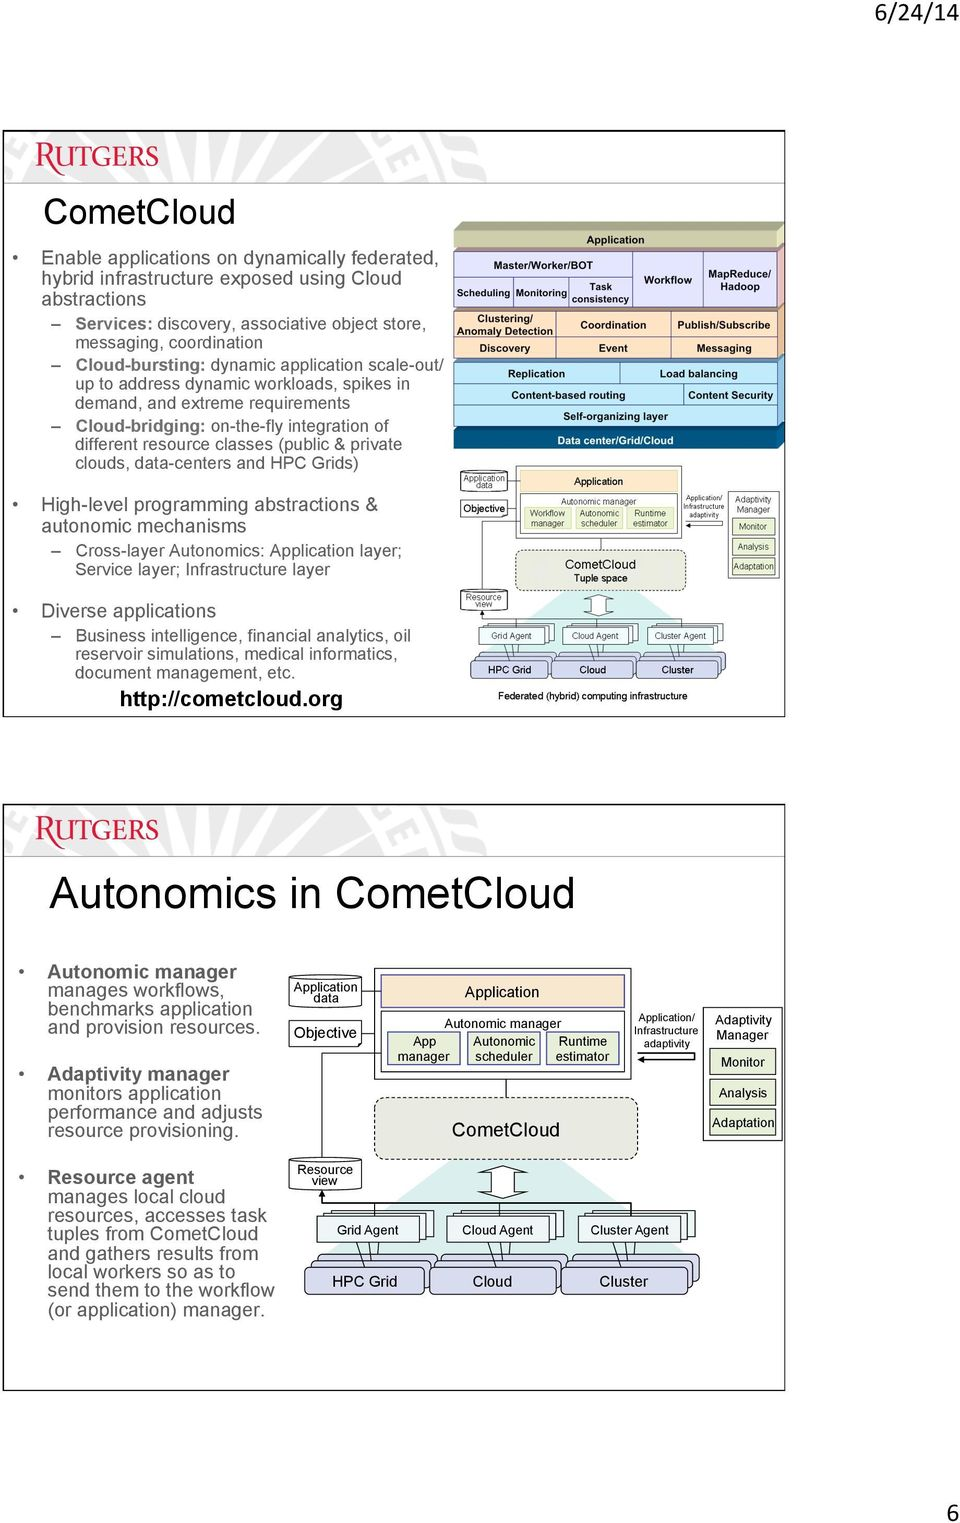 clouds, data-centers and HPC Grids) High-level programming abstractions & autonomic mechanisms Cross-layer Autonomics: Application layer; Service layer; Infrastructure layer Diverse applications